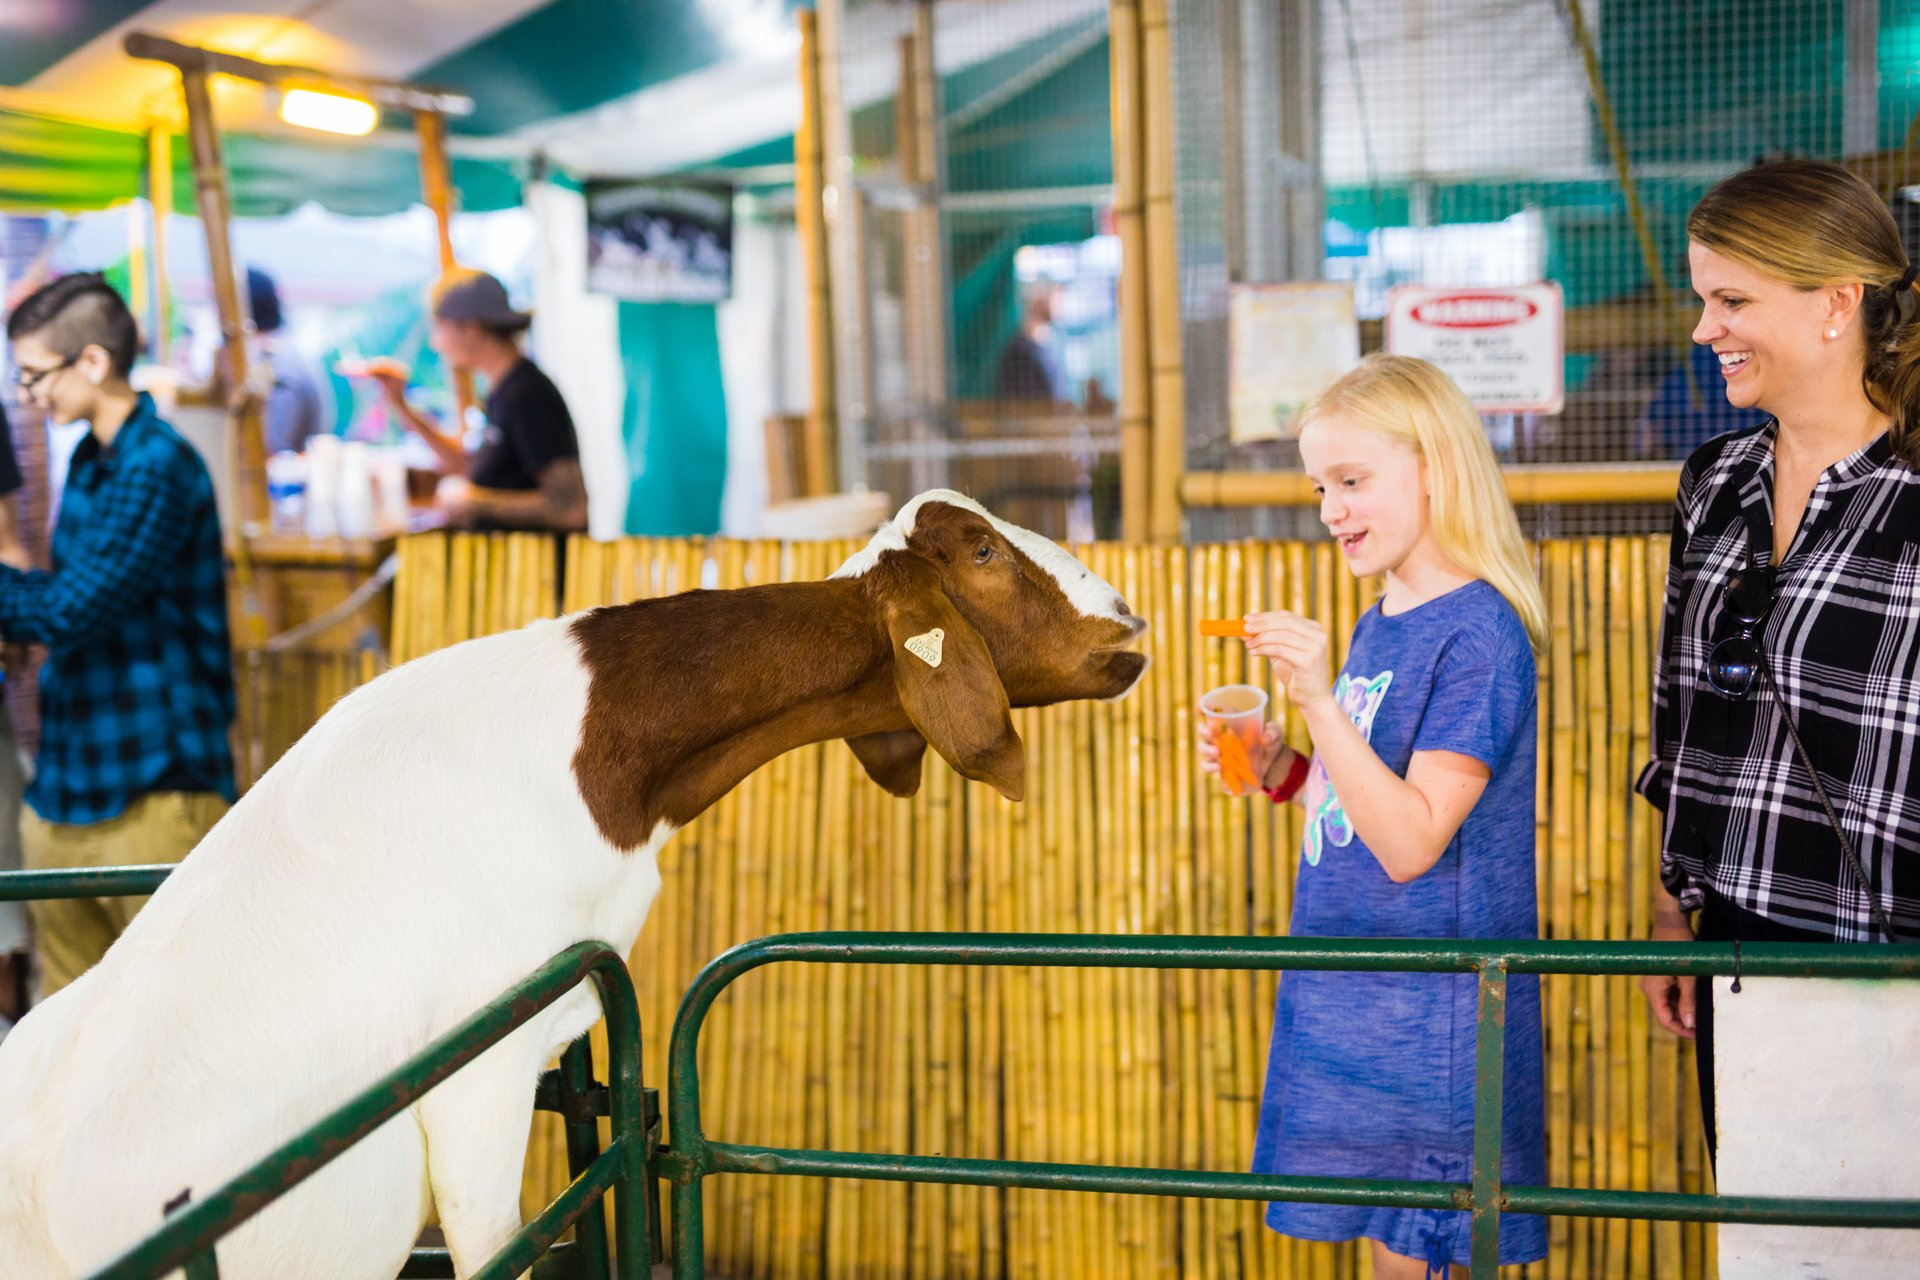 South Carolina State Fair in South Carolina - Best Season 2020